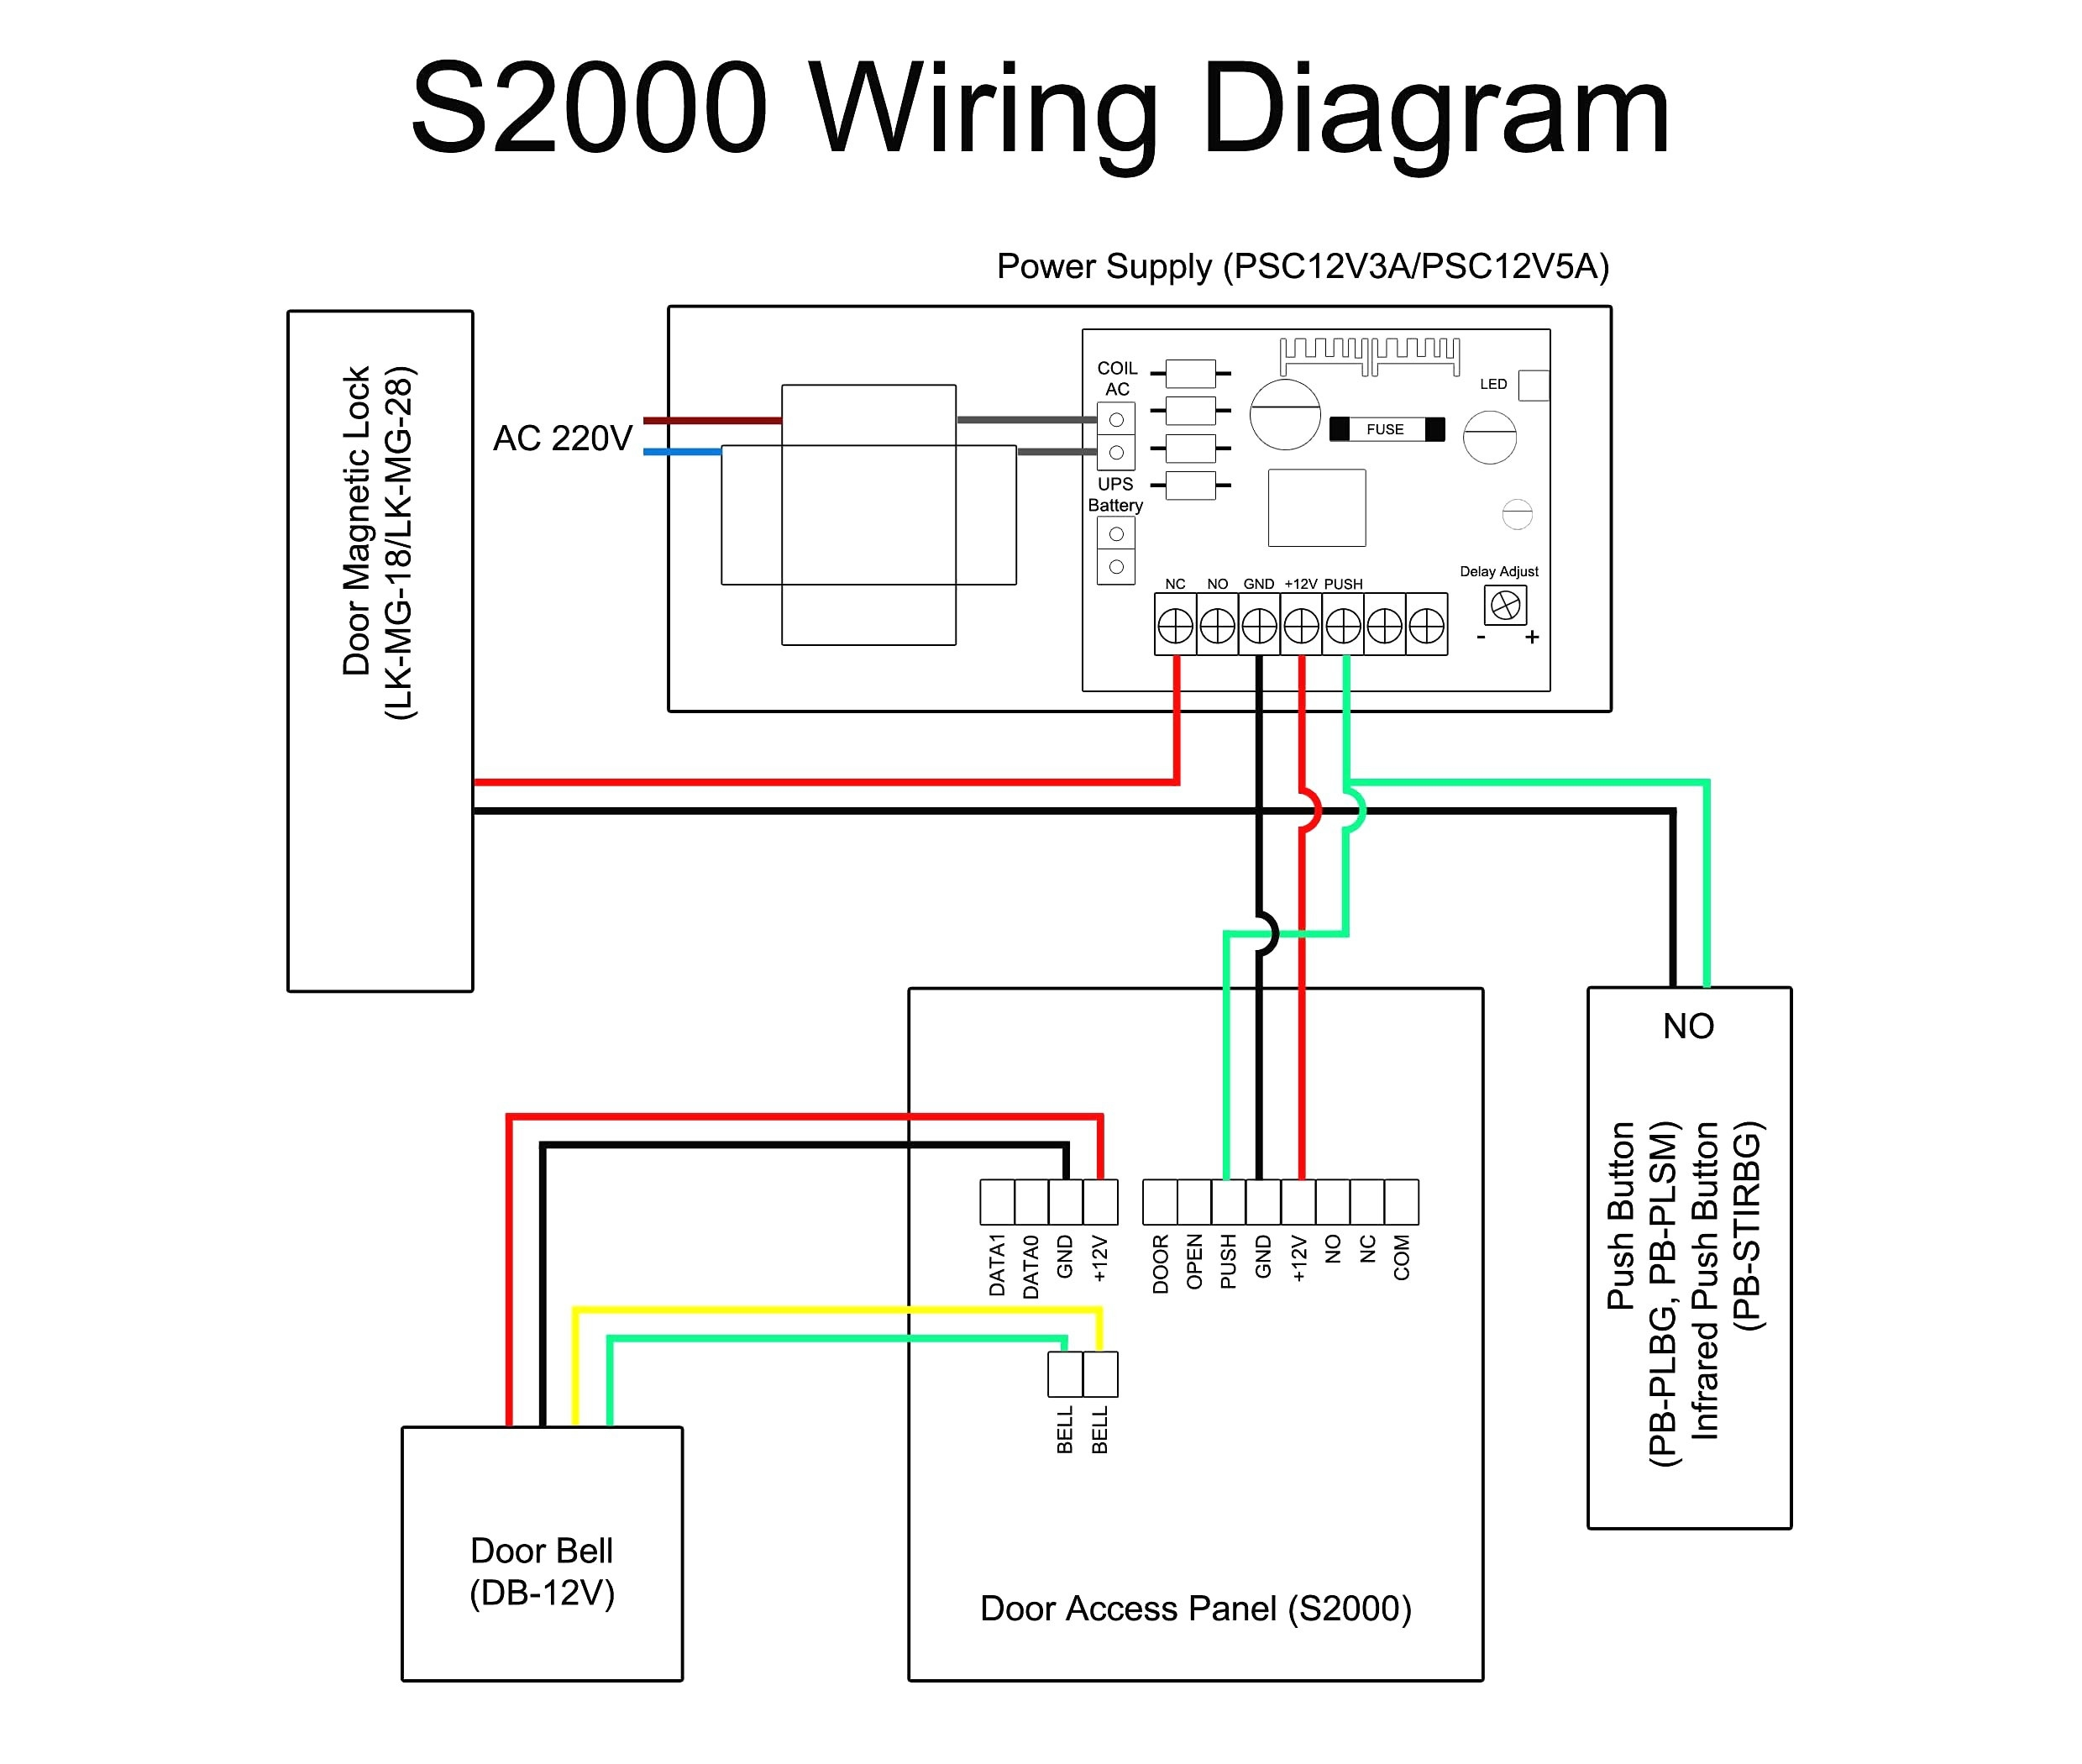 free download gsr205 wiring diagram best wiring library  free download gsr205 wiring diagram wiring diagram libraries wire diagram omnicell free download gsr205 wire diagram